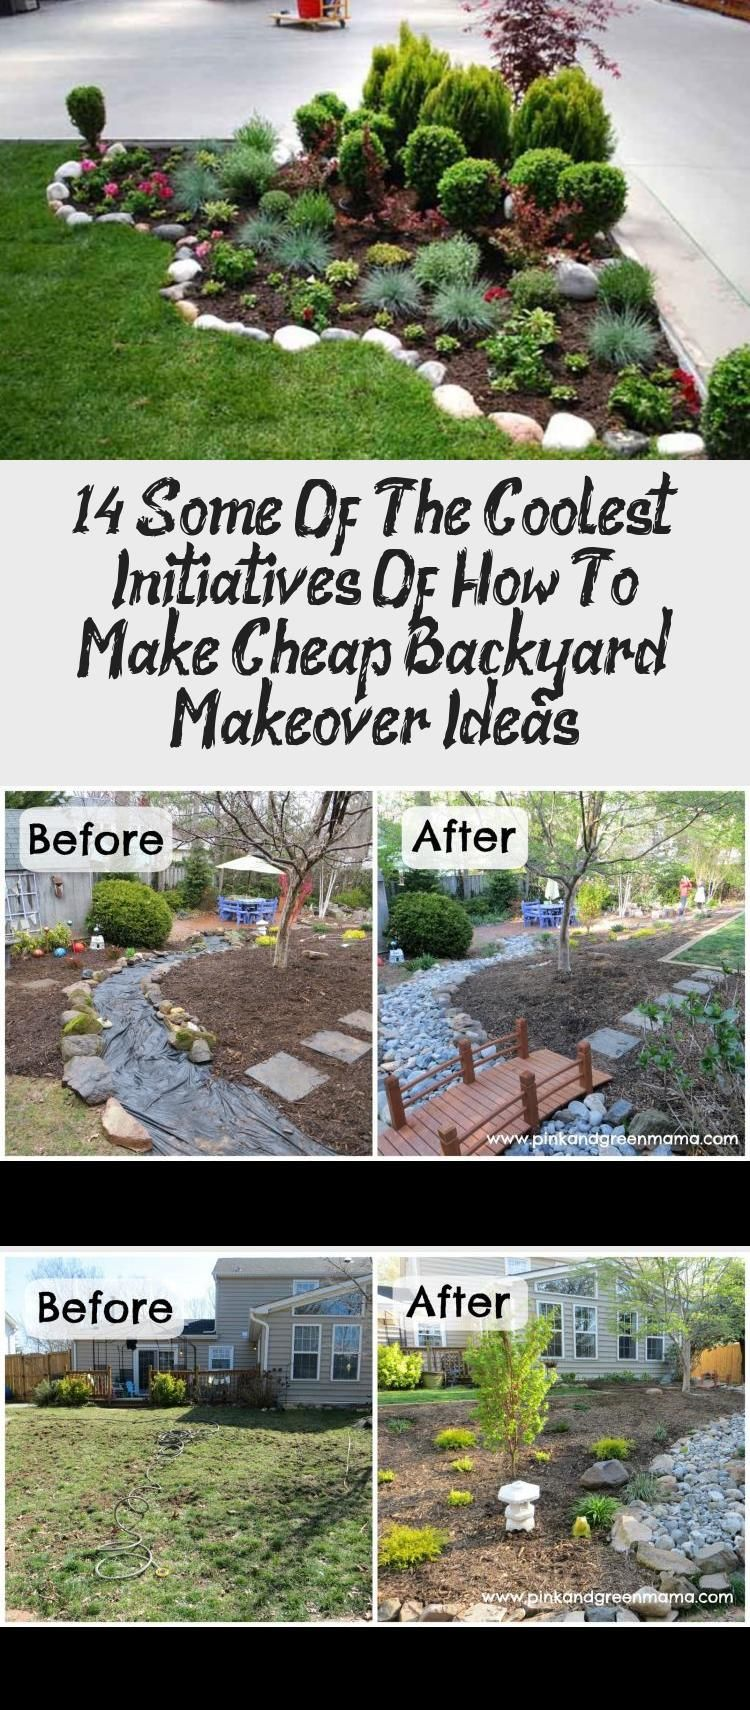 14 Some Of The Coolest Initiatives Of How To Make Cheap Backyard Makeover Ideas Cheap Backyard Makeover Ideas Cheap Backyard Backyard Makeover